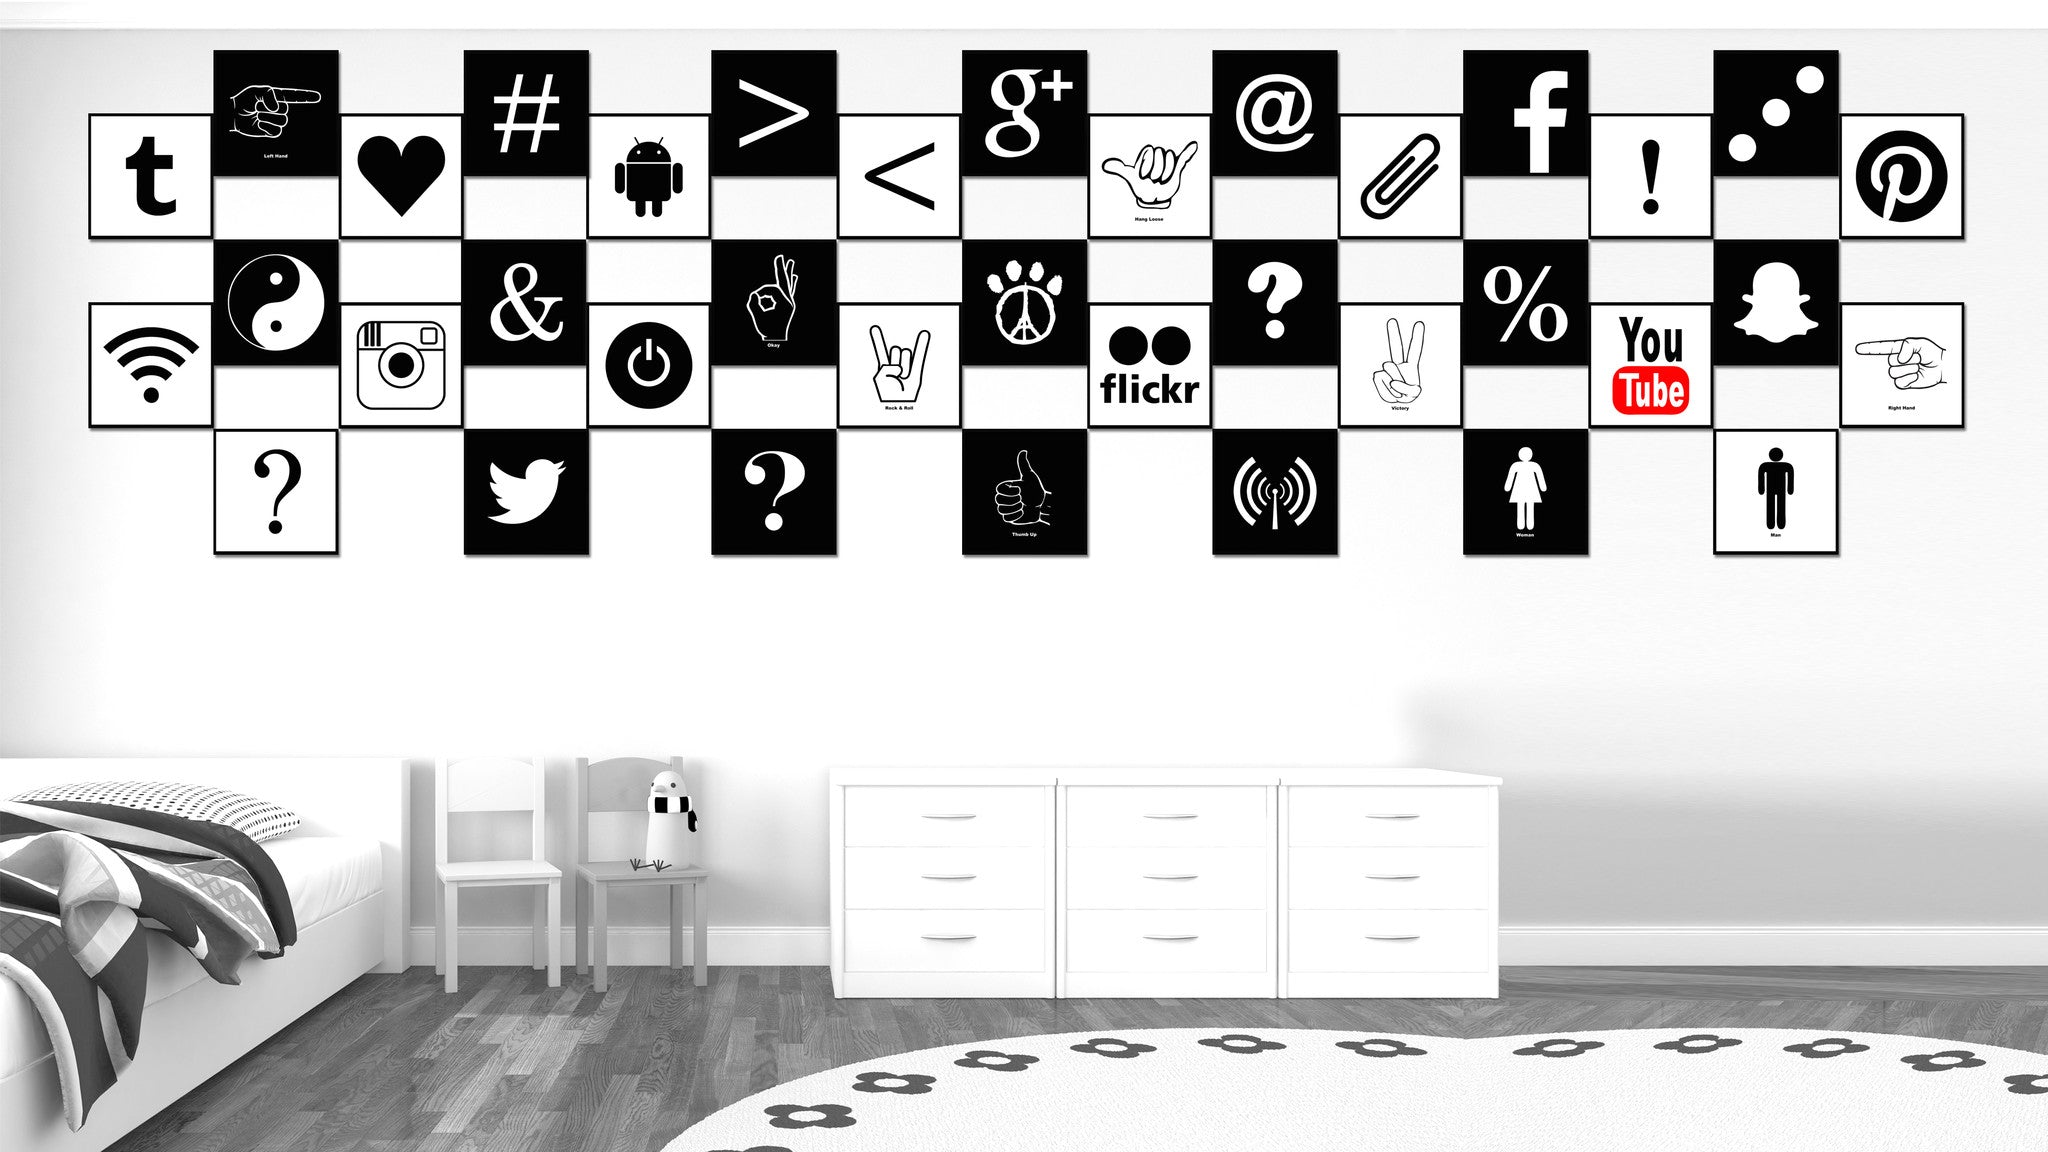 Google Social Media Icon Canvas Print Picture Frame Wall Art Home Decor